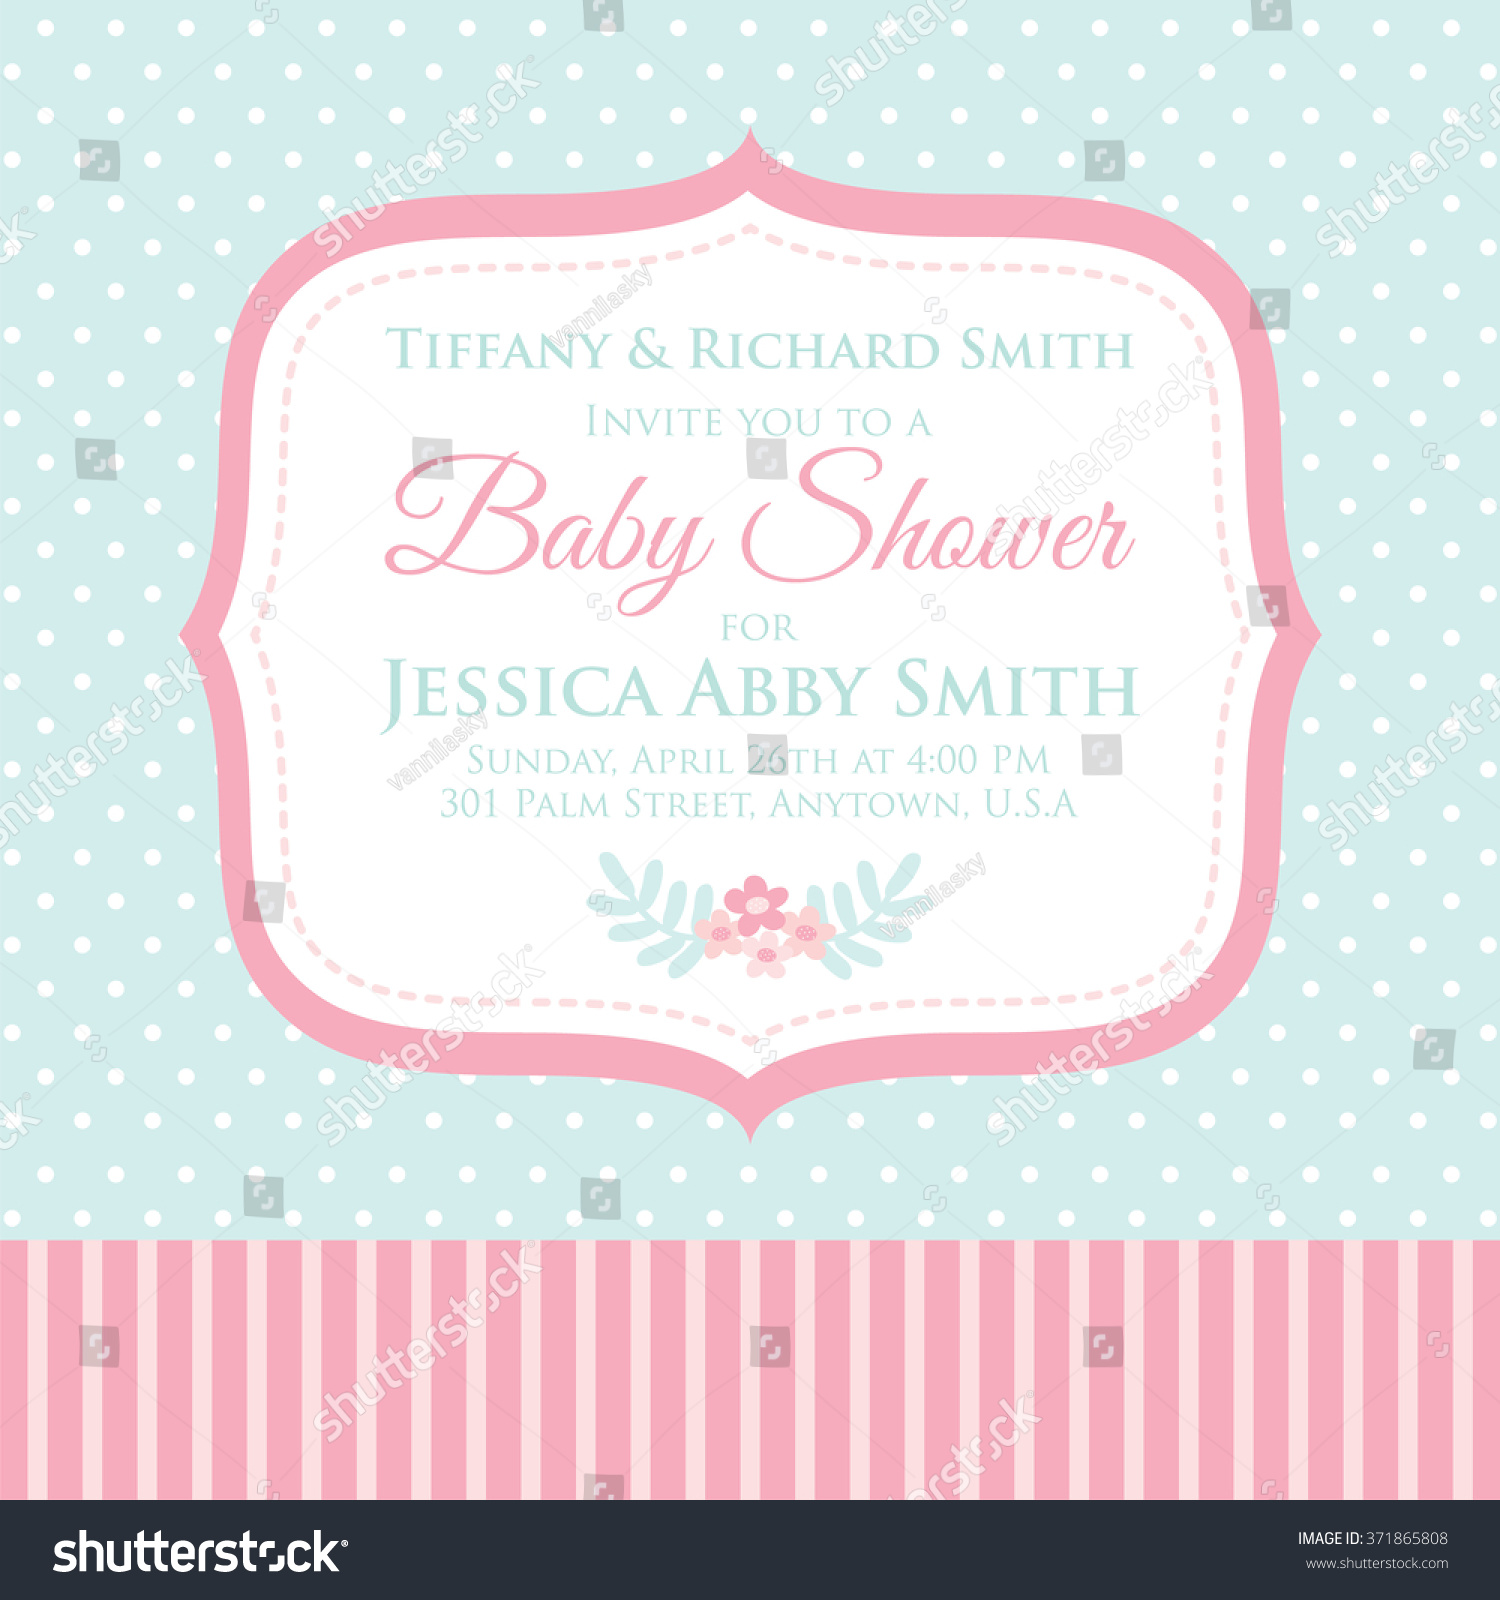 Cute Baby Shower Invitation Stock Photo (Photo, Vector, Illustration ...